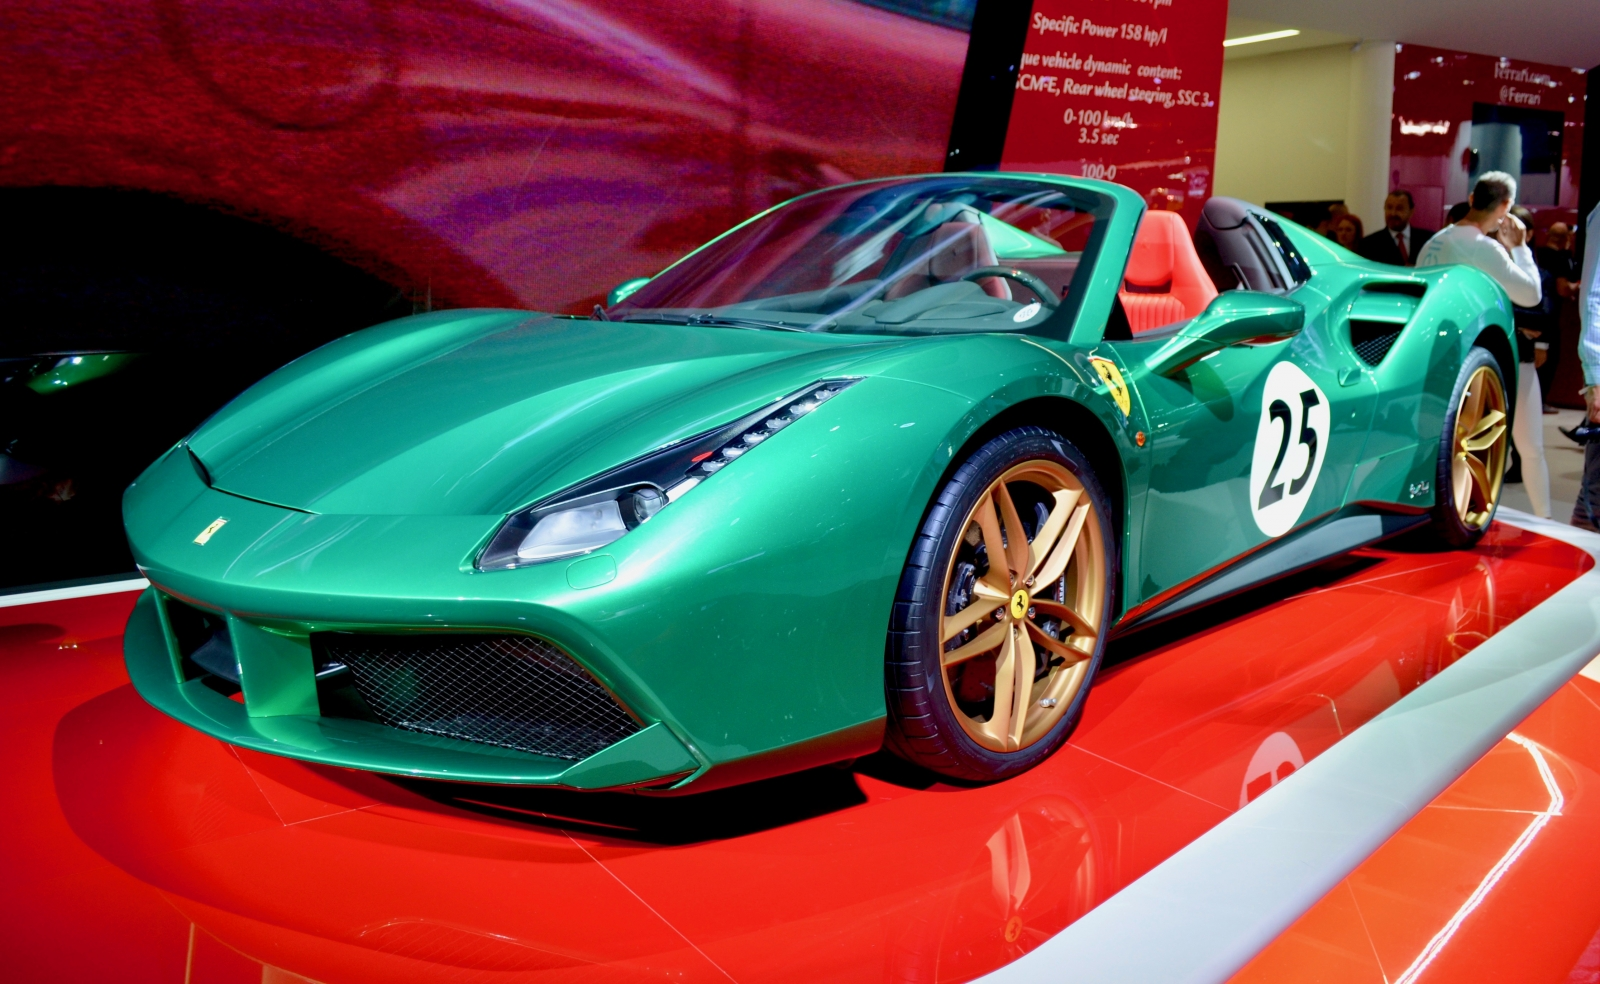 Supercars For Sale >> Ferrari 70th birthday special editions revealed in Paris